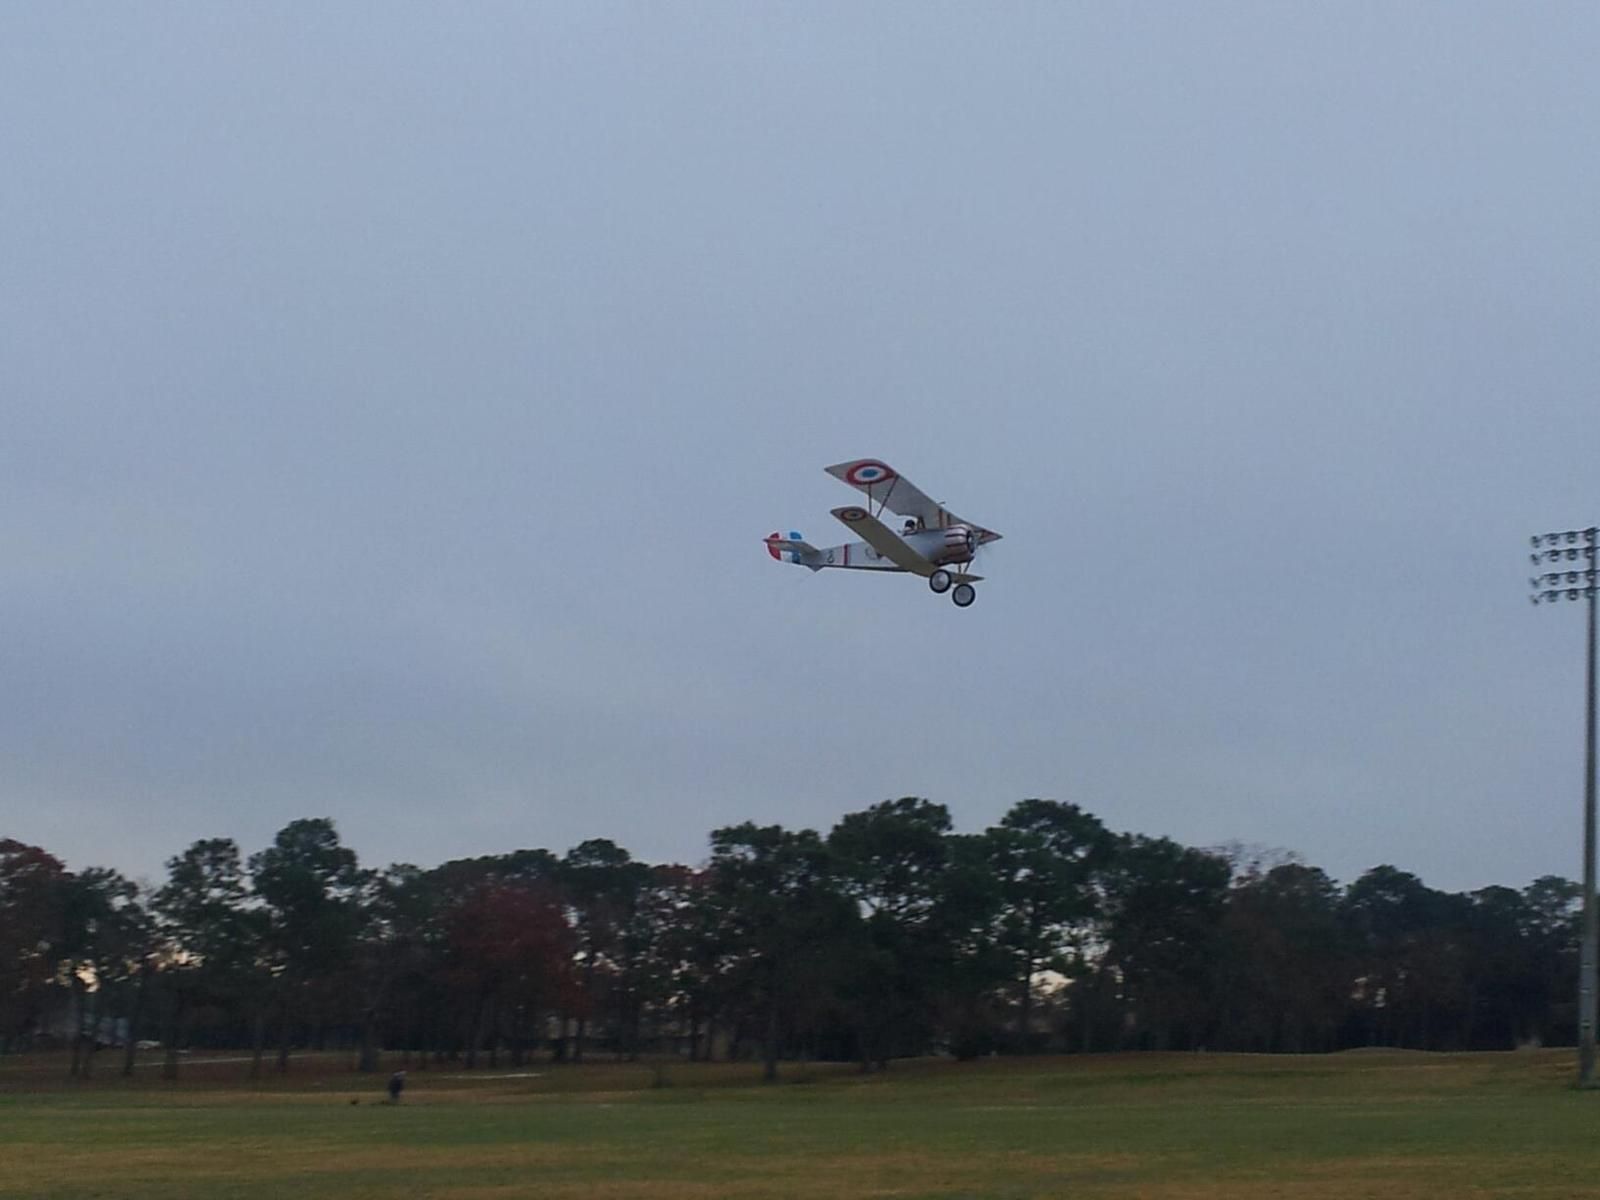 The Nieuport flew very well with it's 2208/17 motor and 7x5 prop.